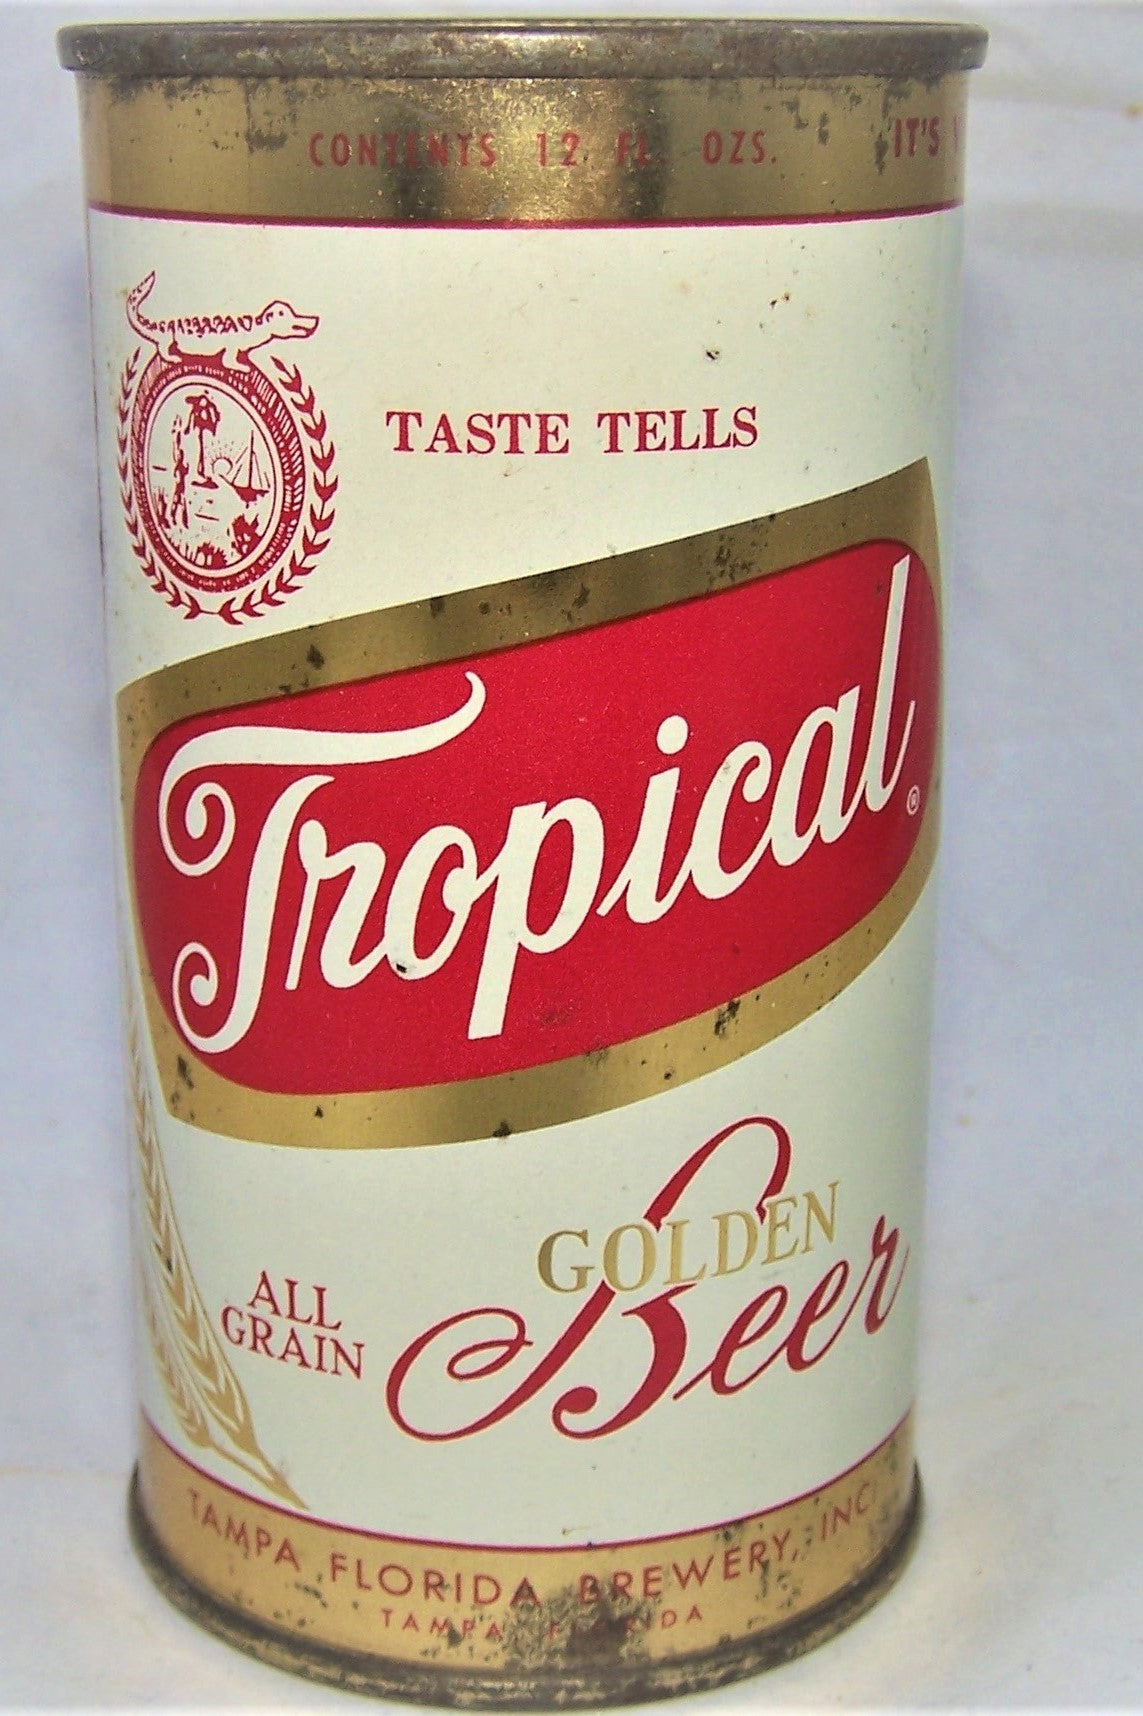 Tropical Golden Beer Grade 1- Florida can